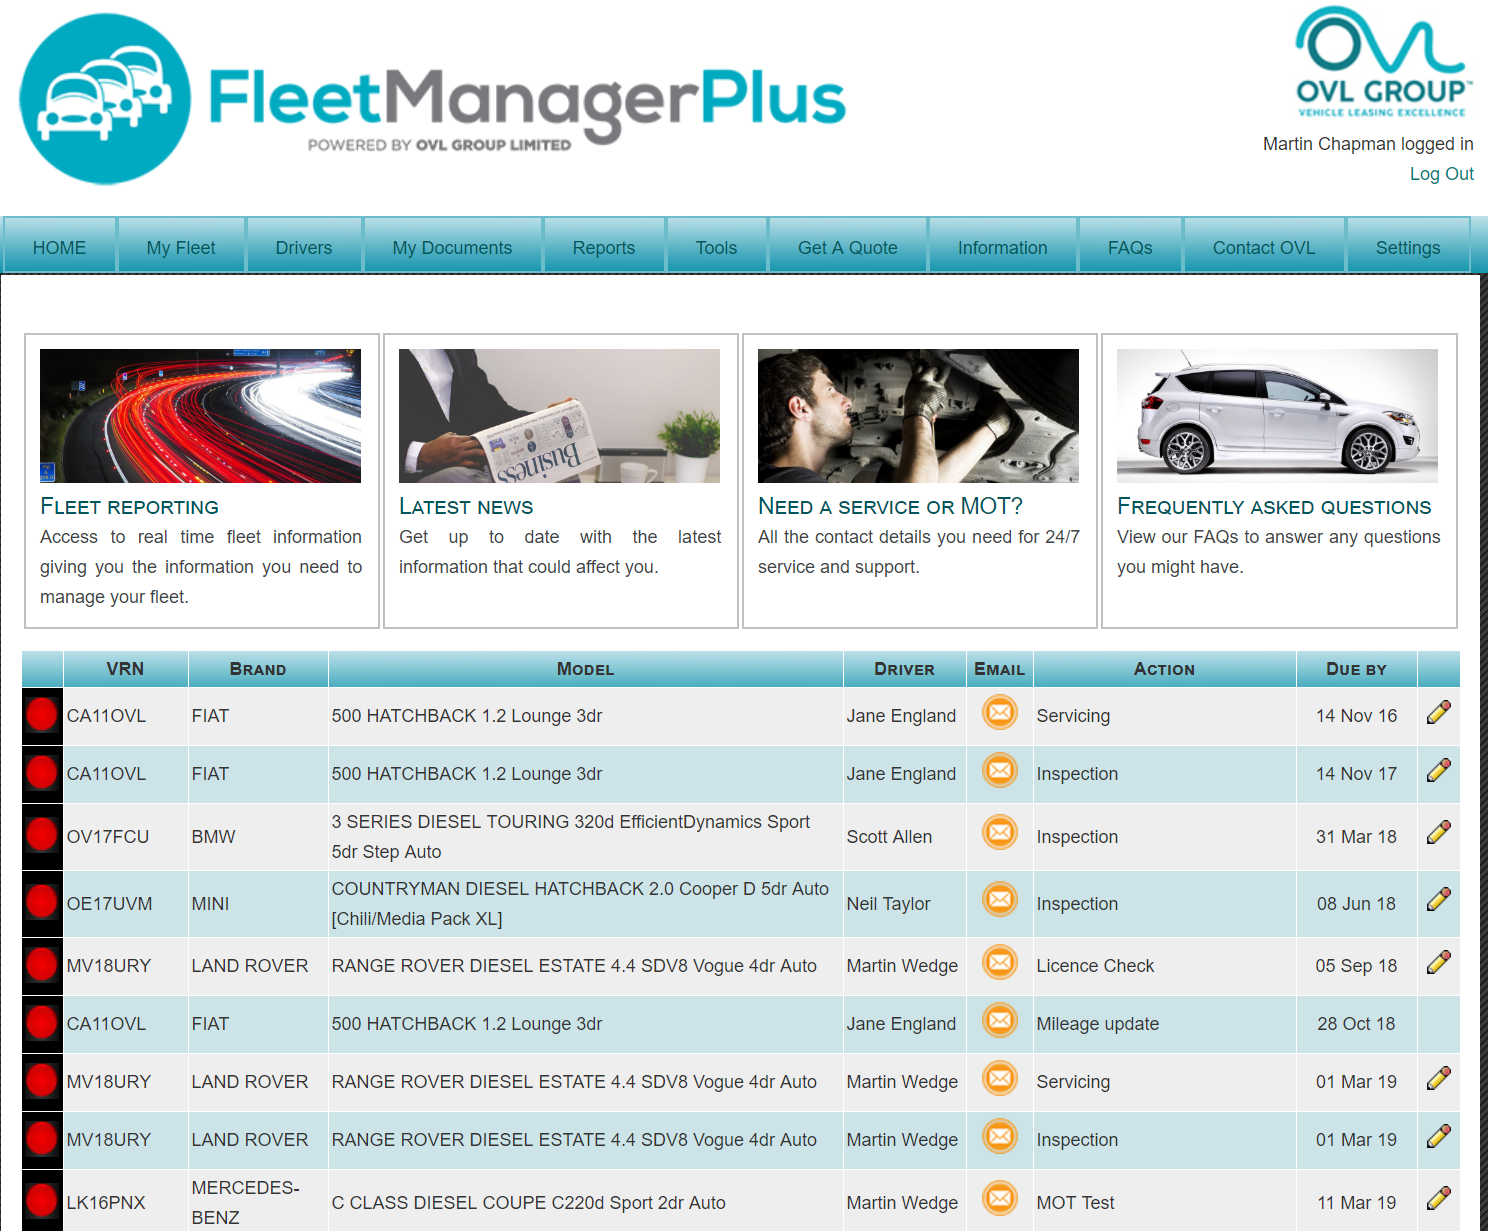 Common data accessed through fleet management software